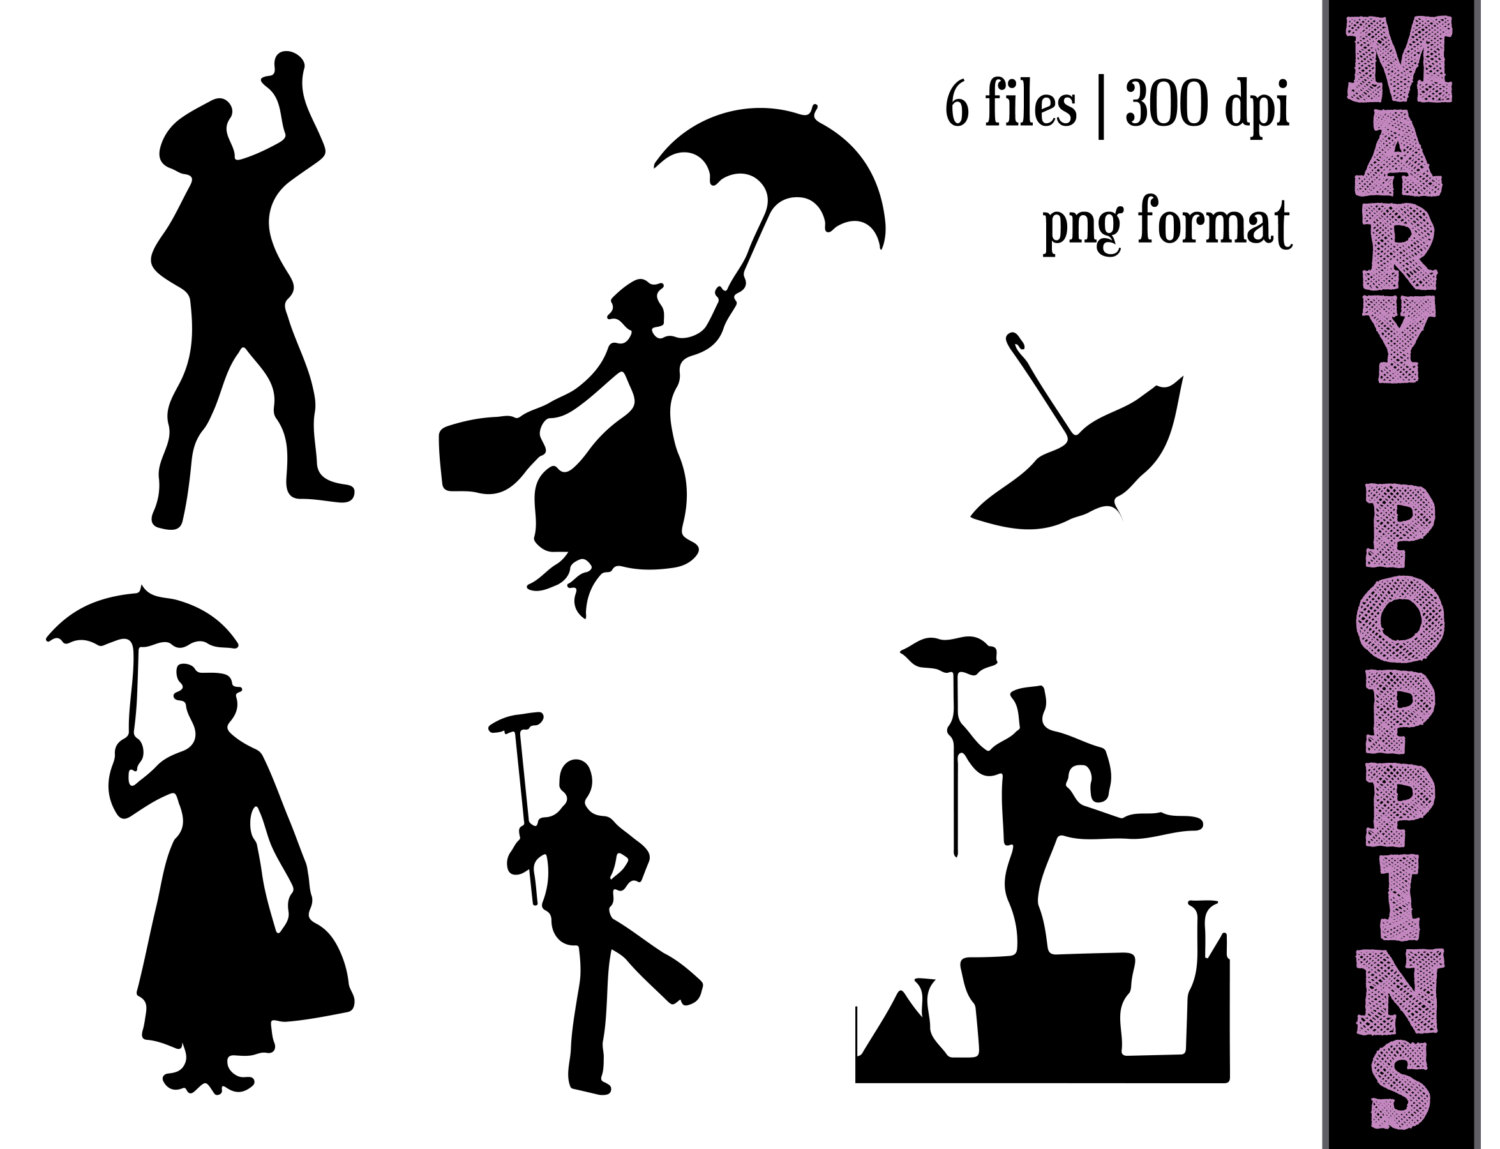 Mary Poppins Silhouette Clip Art N5 free image.